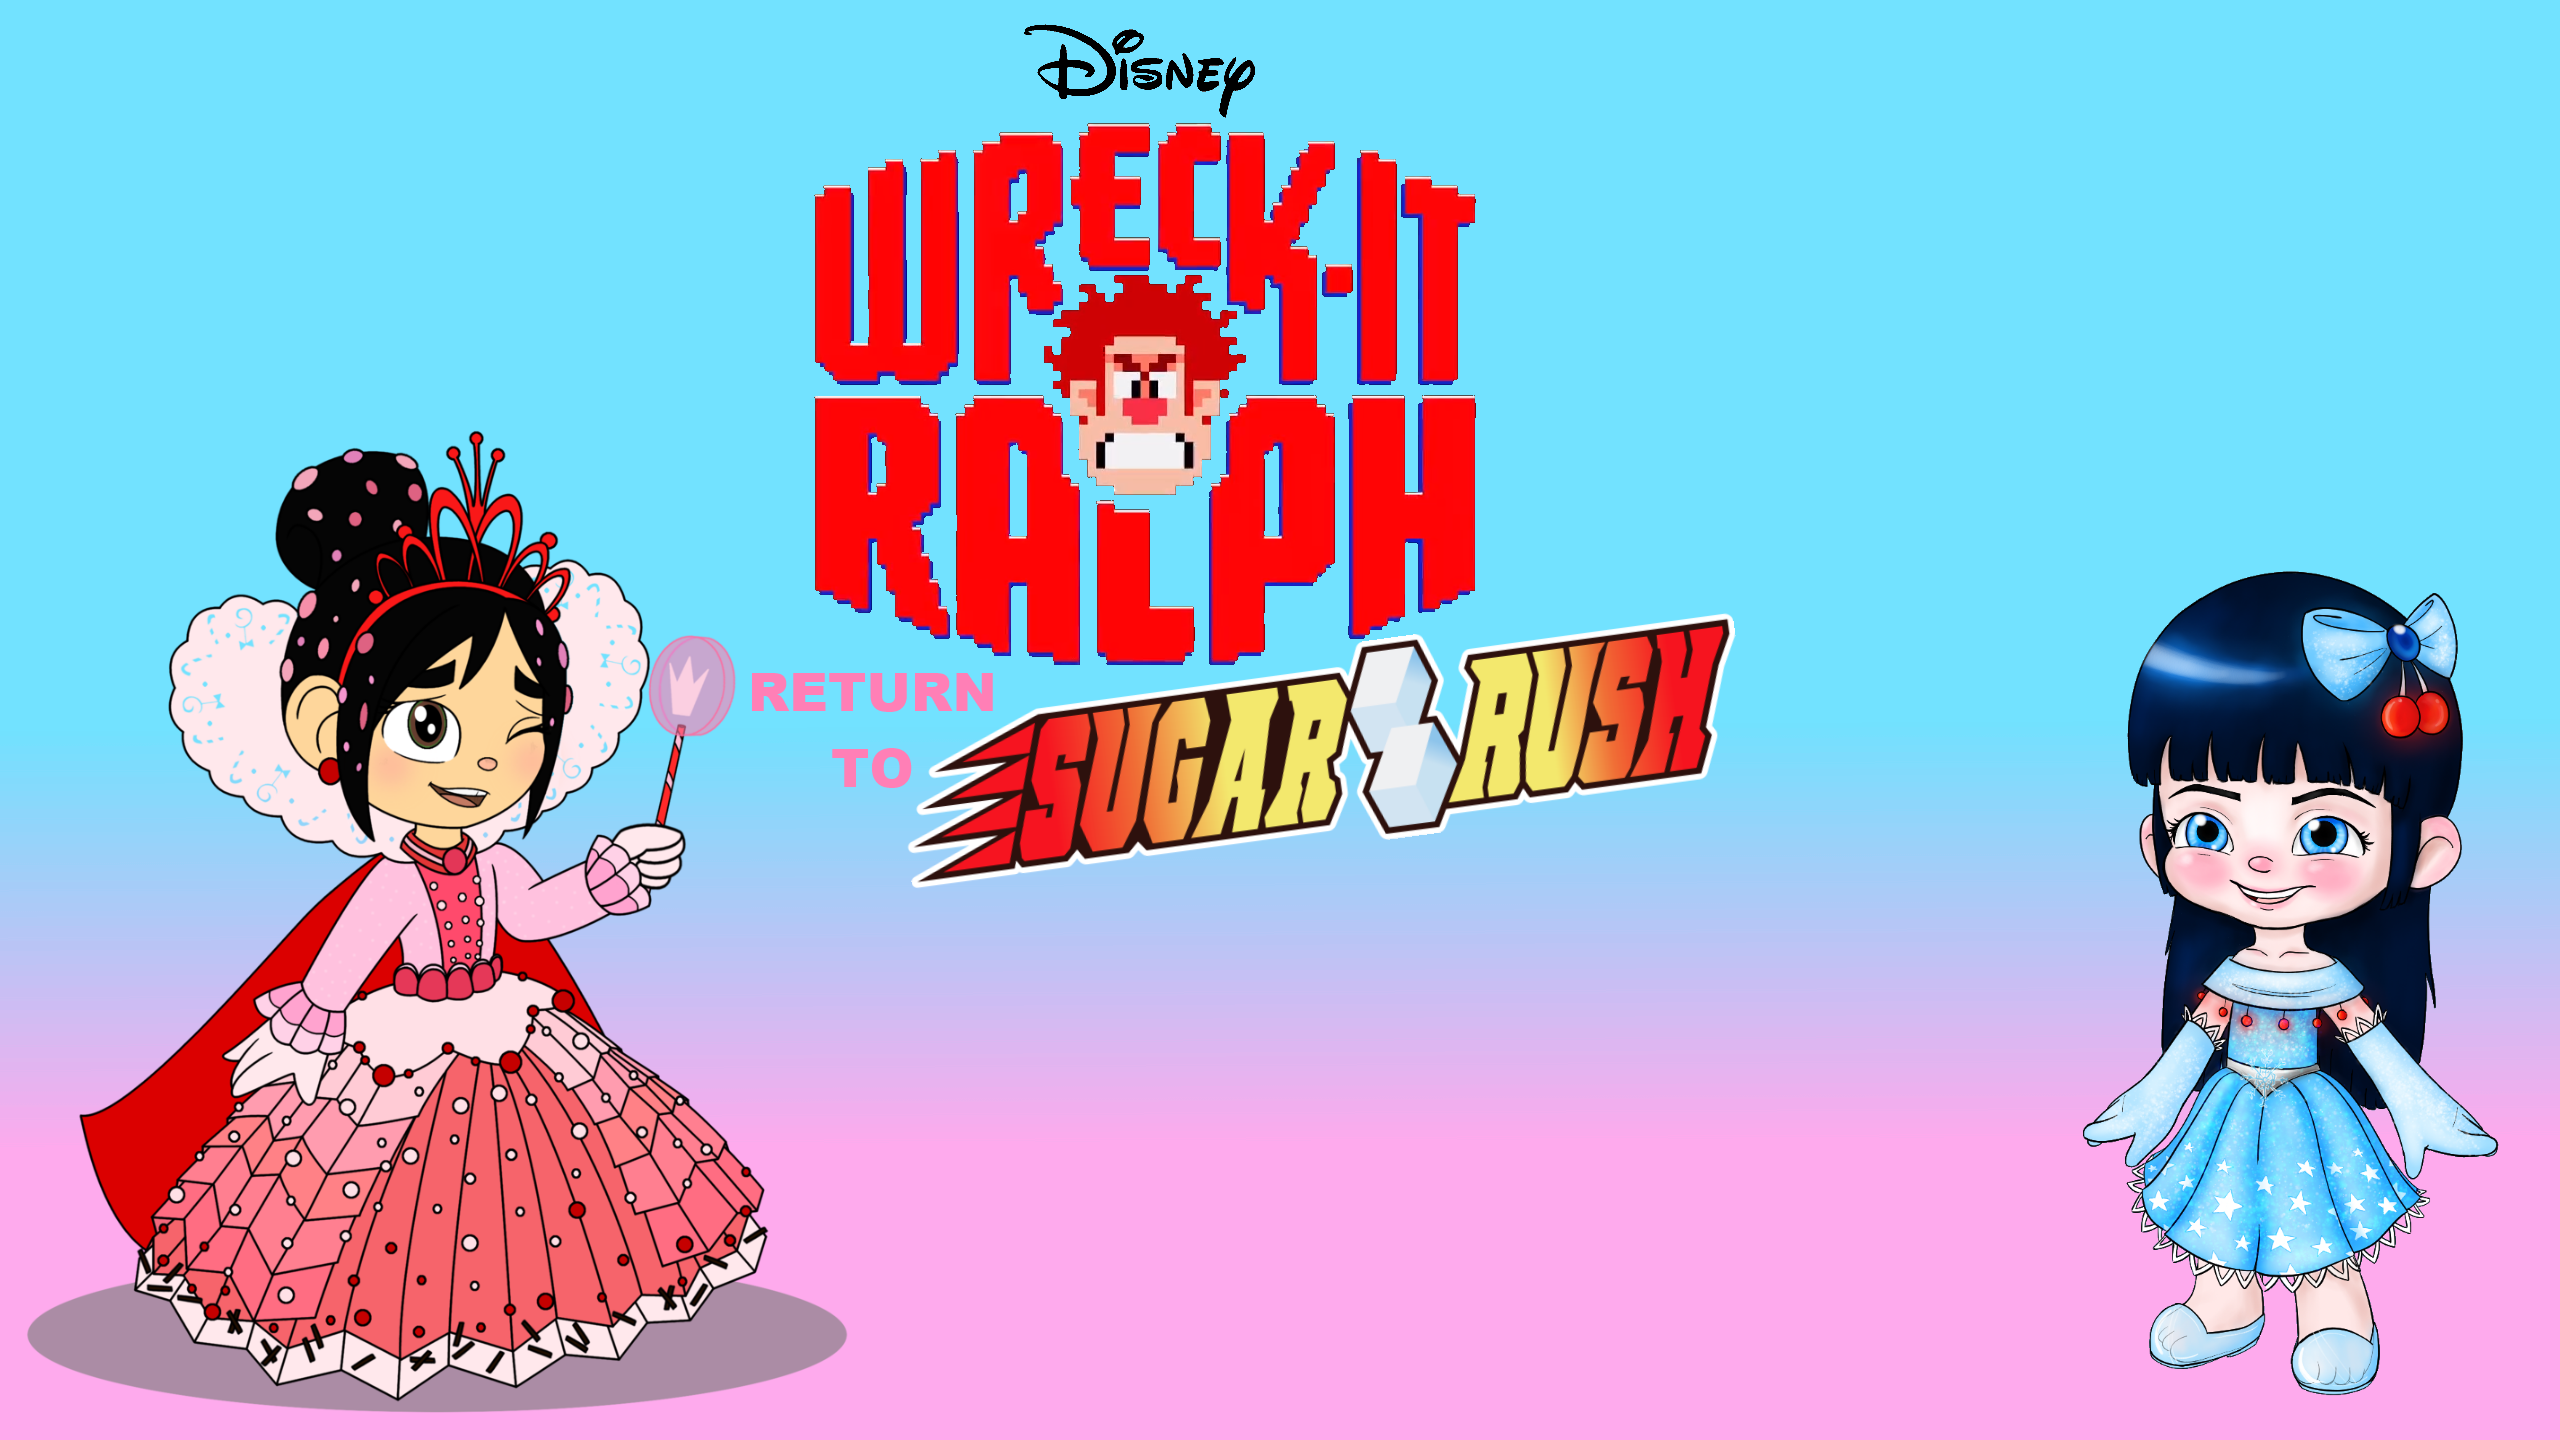 Wreck it ralph wreck it ralph return to sugar rush wallpaper